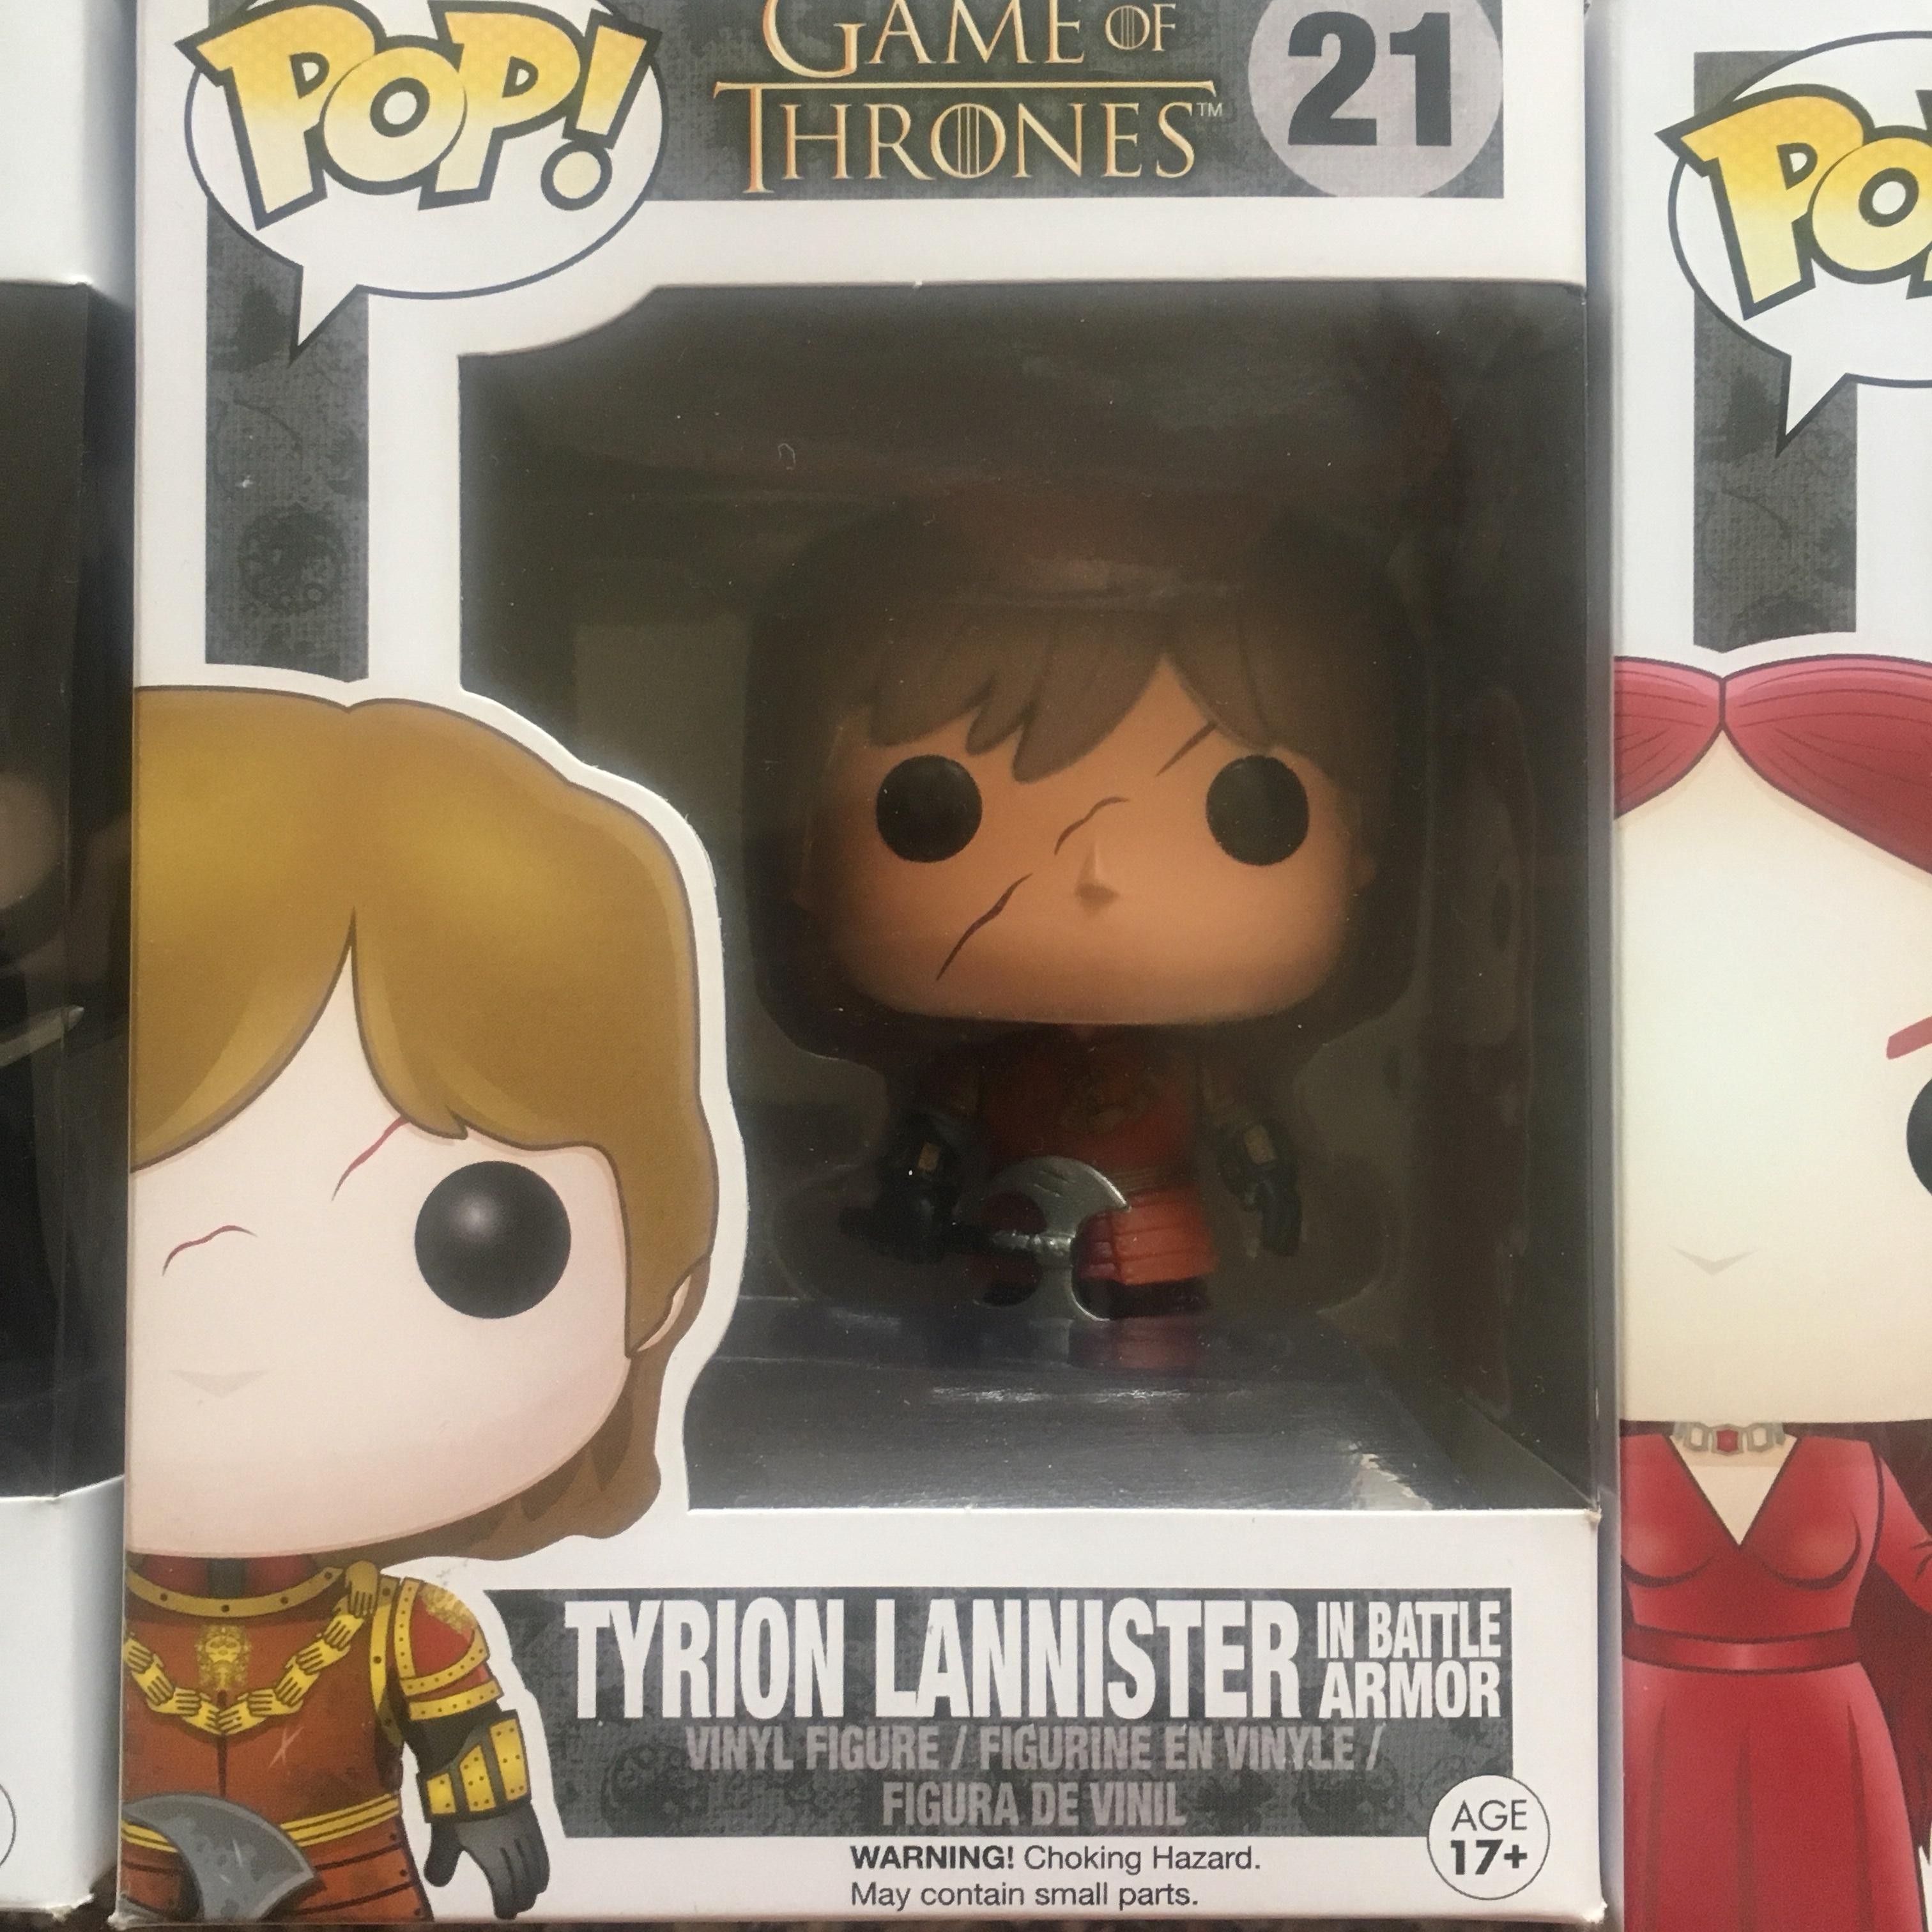 FUNKO POP TYRION LANNISTER IN BATTLE ARMOR 21 GAME OF THRONES